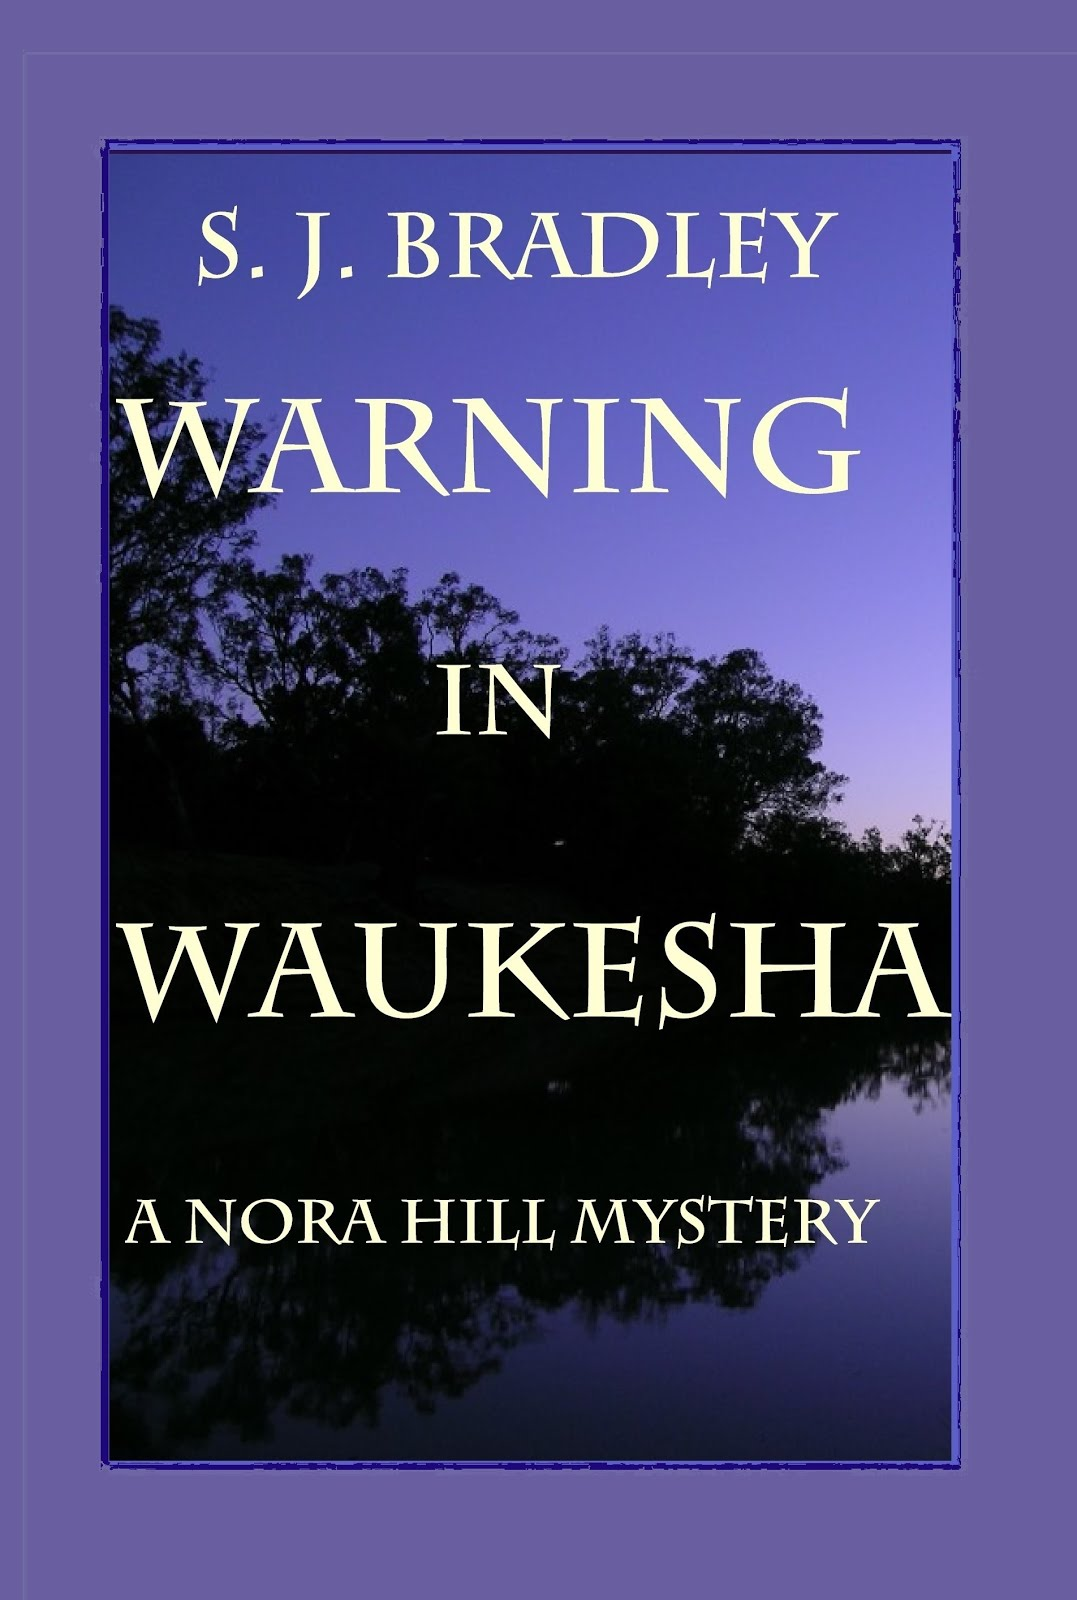 NEW!  Nora Hill Mystery #3